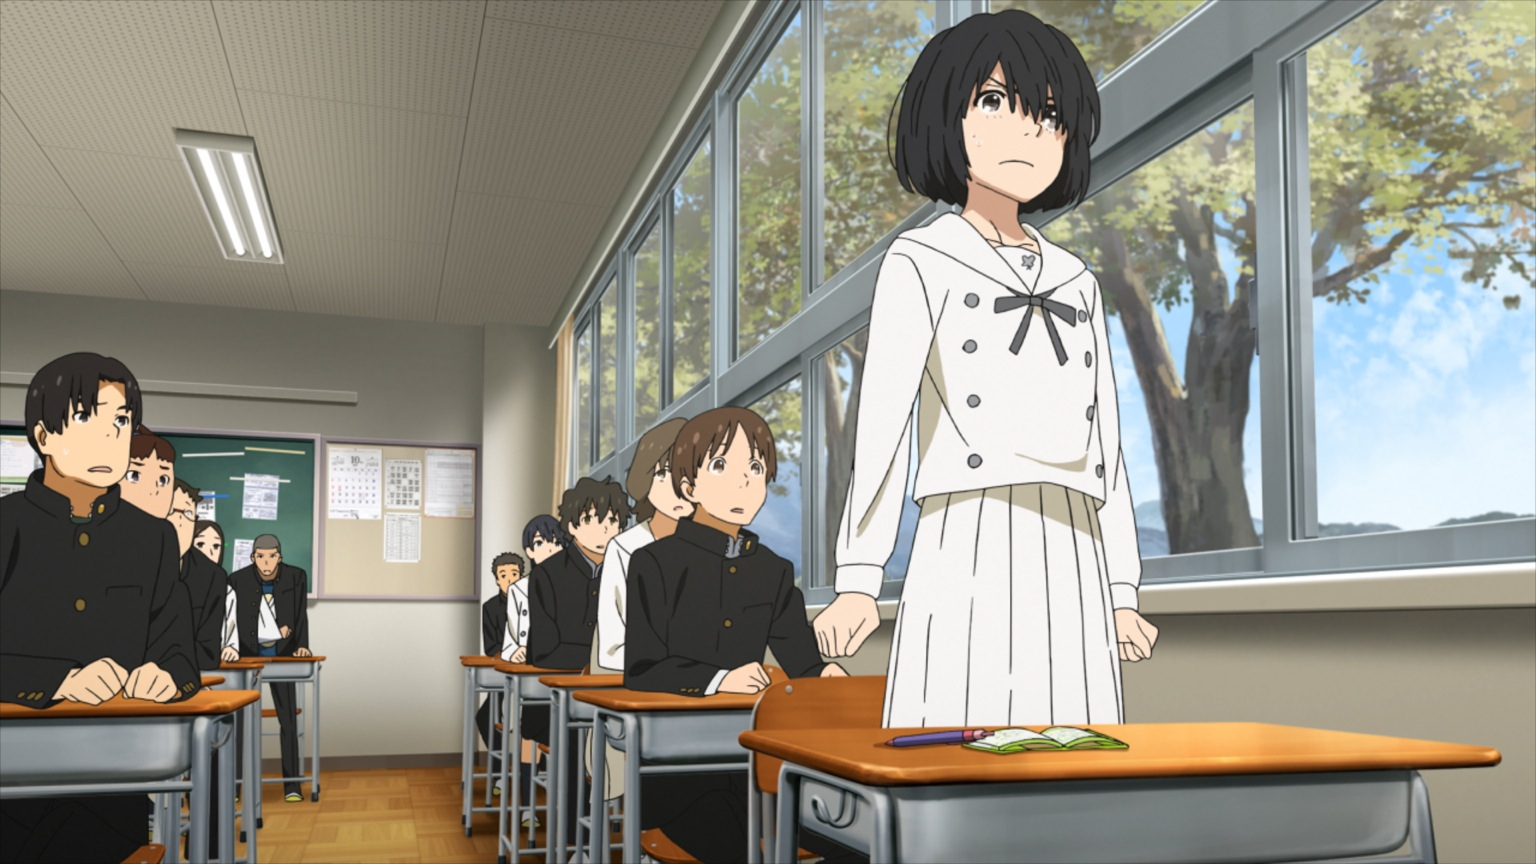 The voiceless Jun stands up in class in Anthem of the Heart (2015)